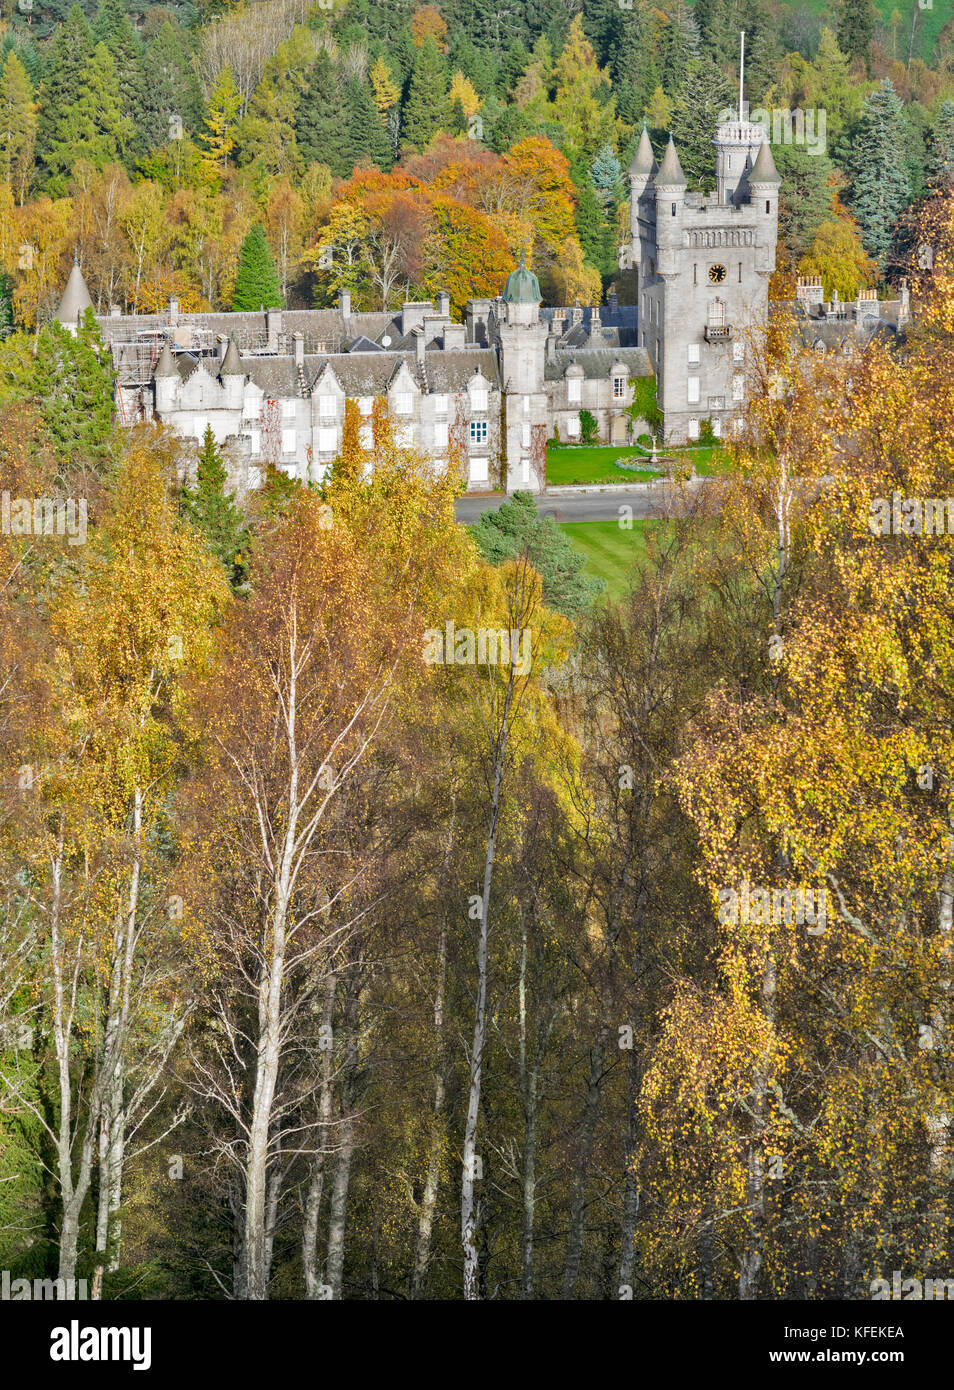 BALMORAL CASTLE ROYAL DEESIDE ABERDEENSHIRE SCOTLAND BIRCH TREES WITH AUTUMN LEAVES SURROUND THE CASTLE - Stock Image